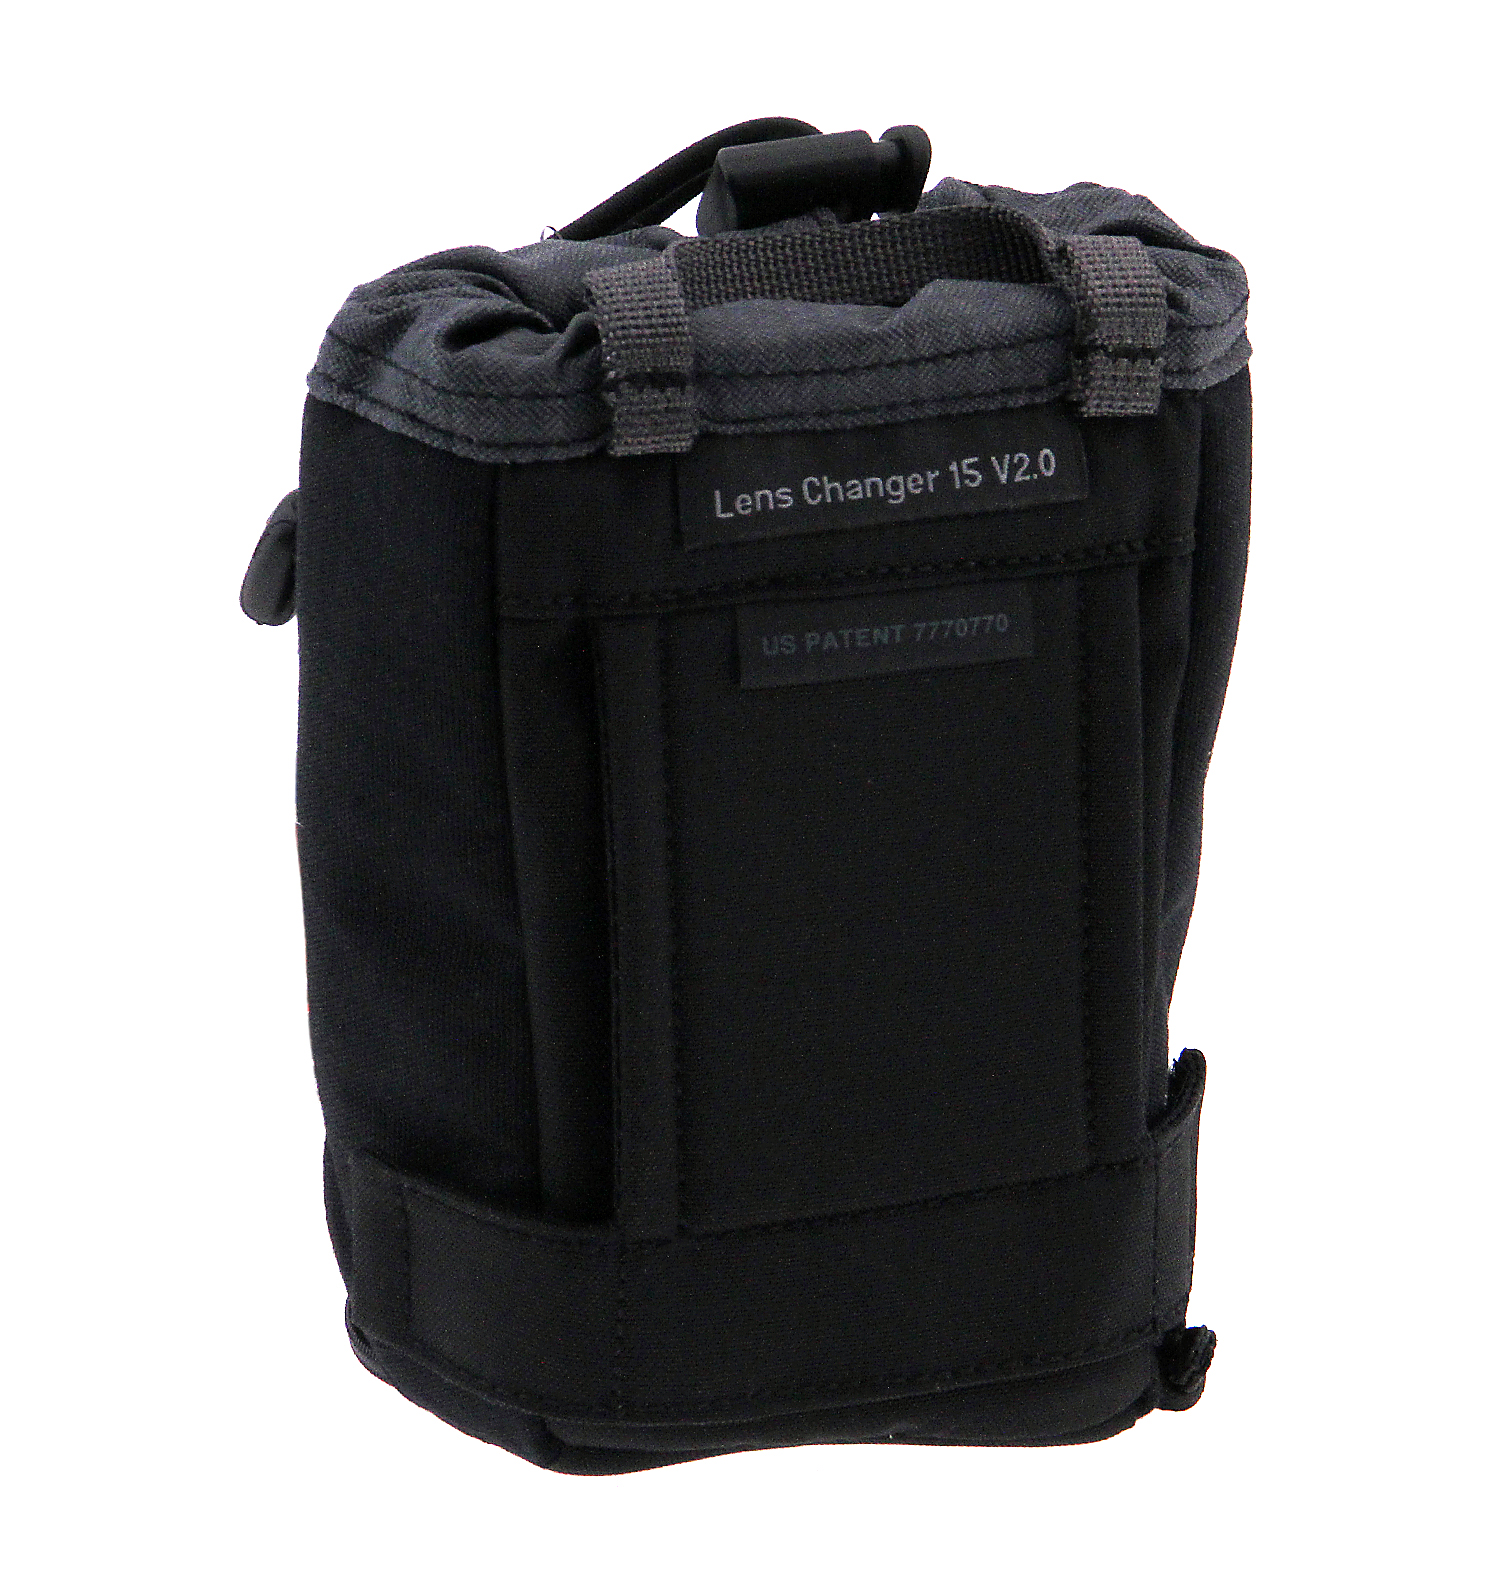 Lens Changer 15 V2.0 Bag Black